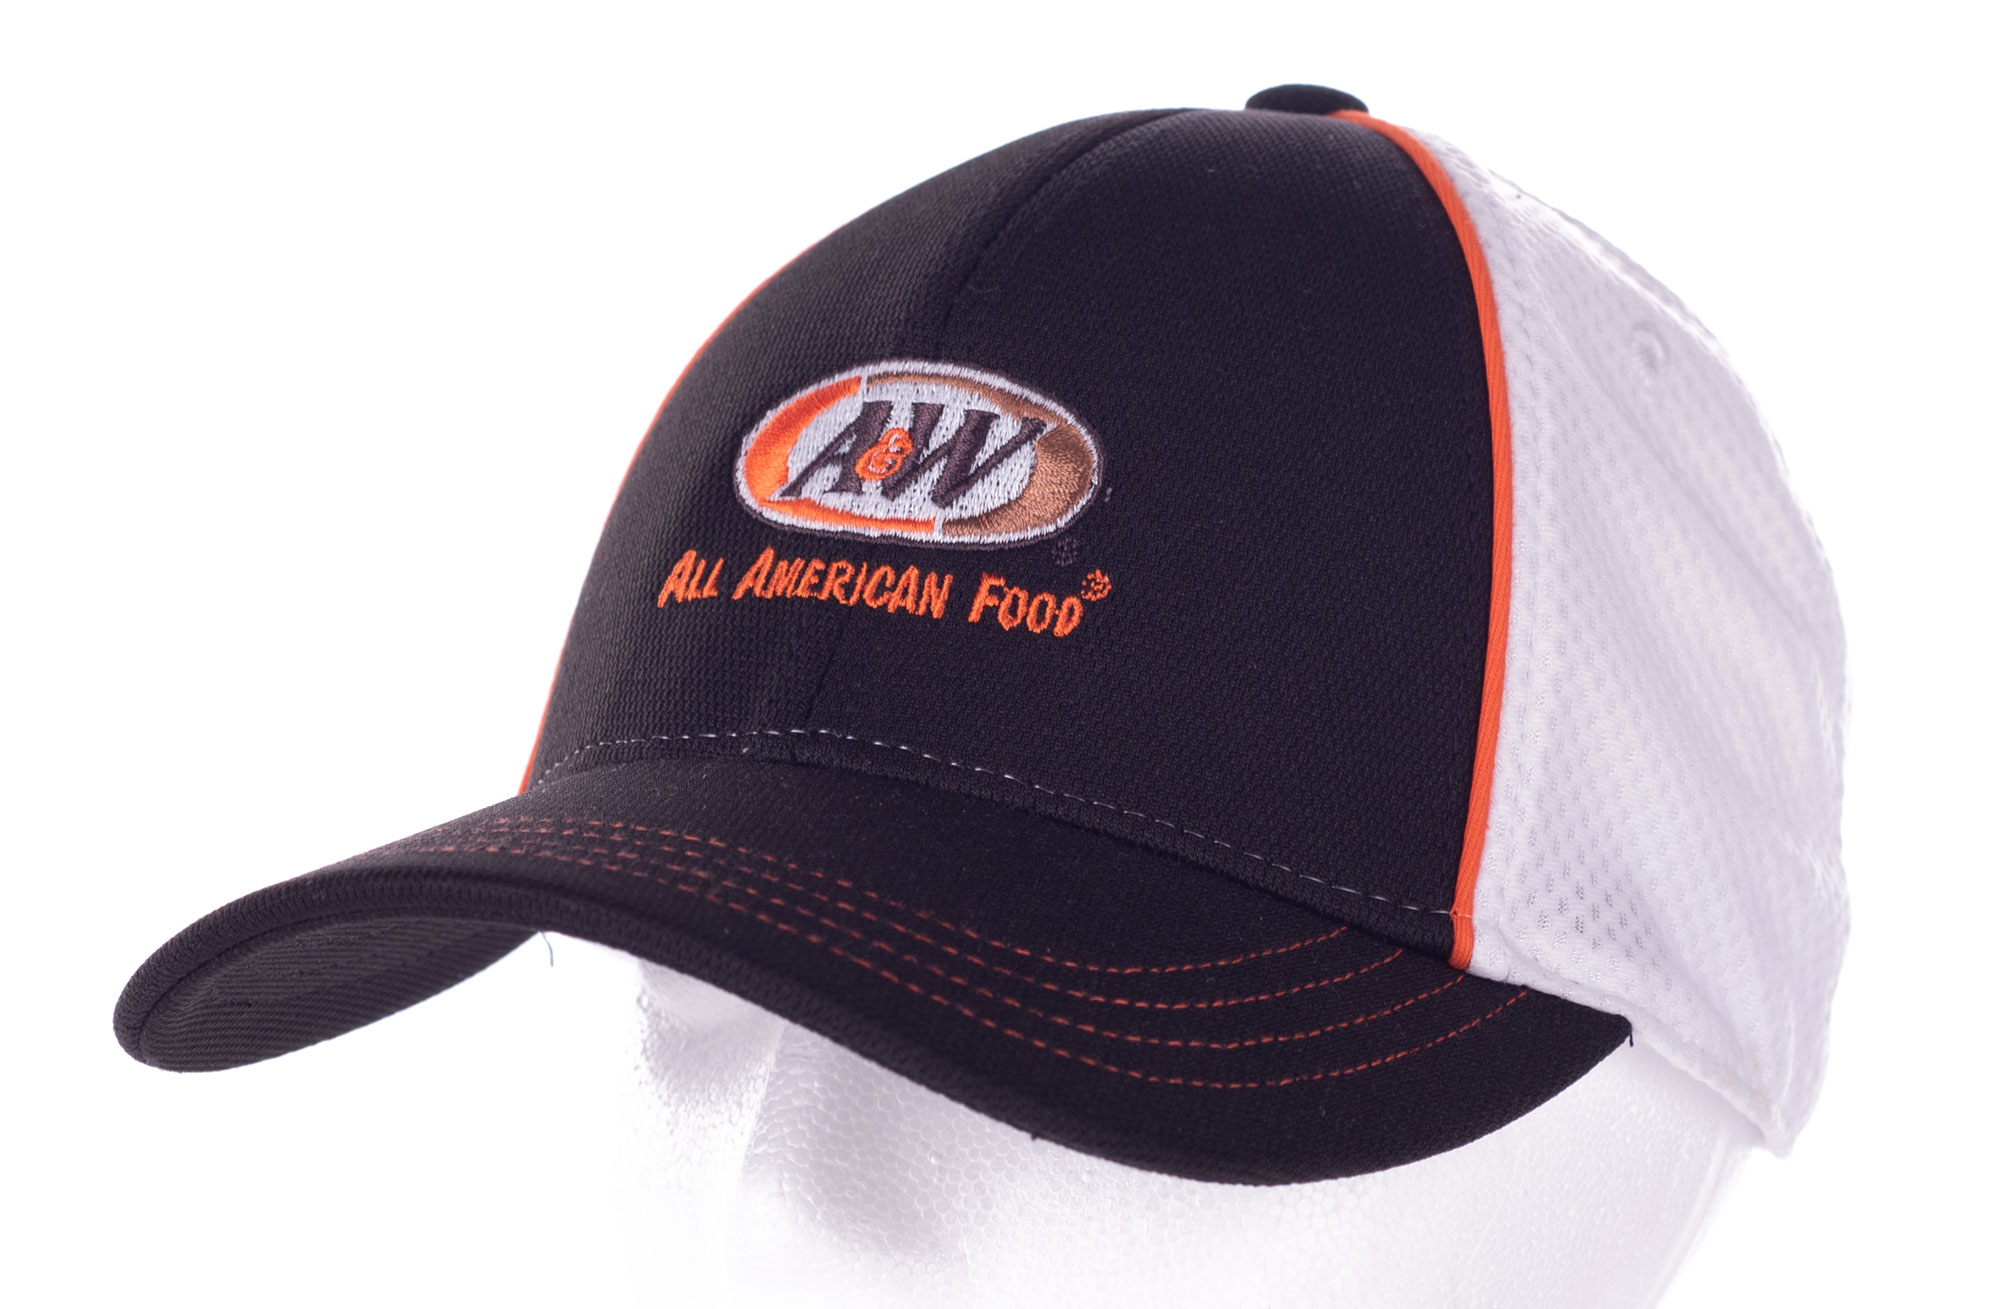 A&W Piped Mesh Back Cap